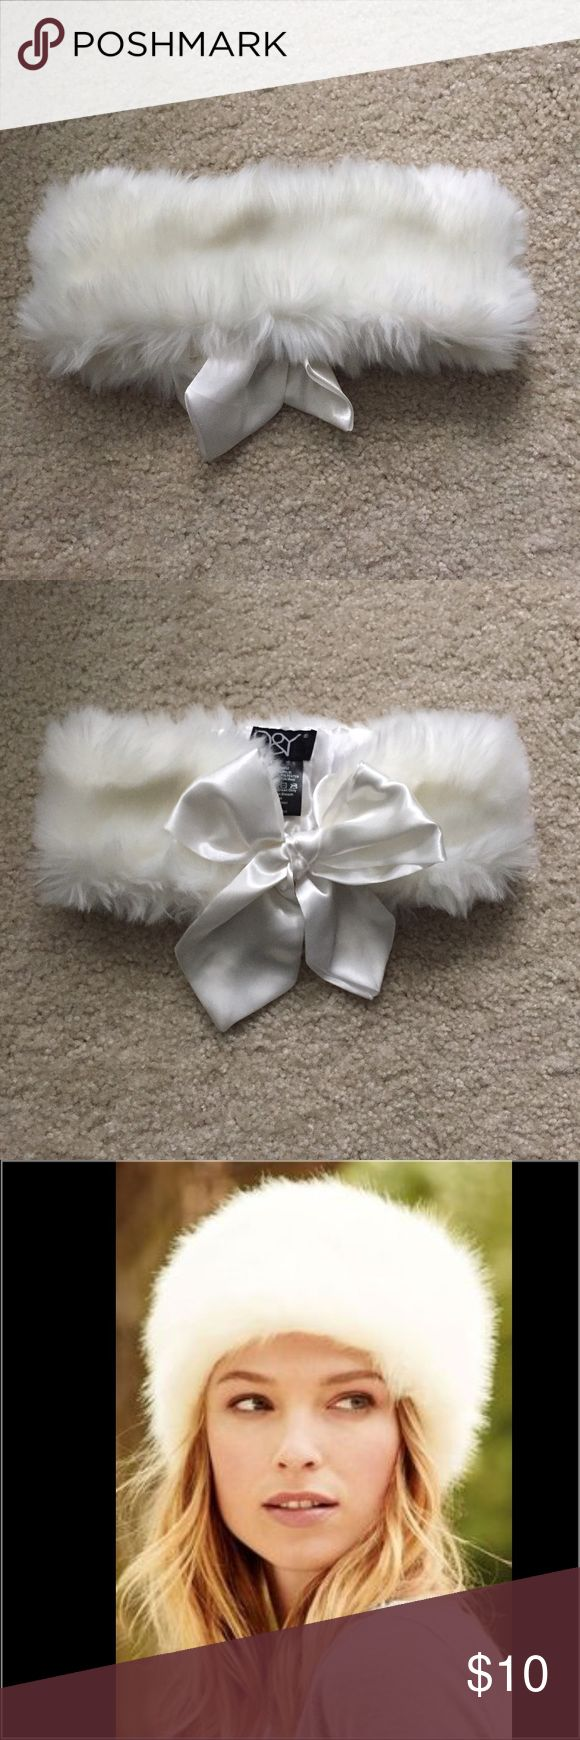 White Faux Fur Head Warmer / Headband / Ear Warmer White Faux Fur Headband with white bow in the back! Worn once, No stains!!! Elastic band in the back as shown in last photo. 80% acrylic, 20% polyester. D&Y Accessories